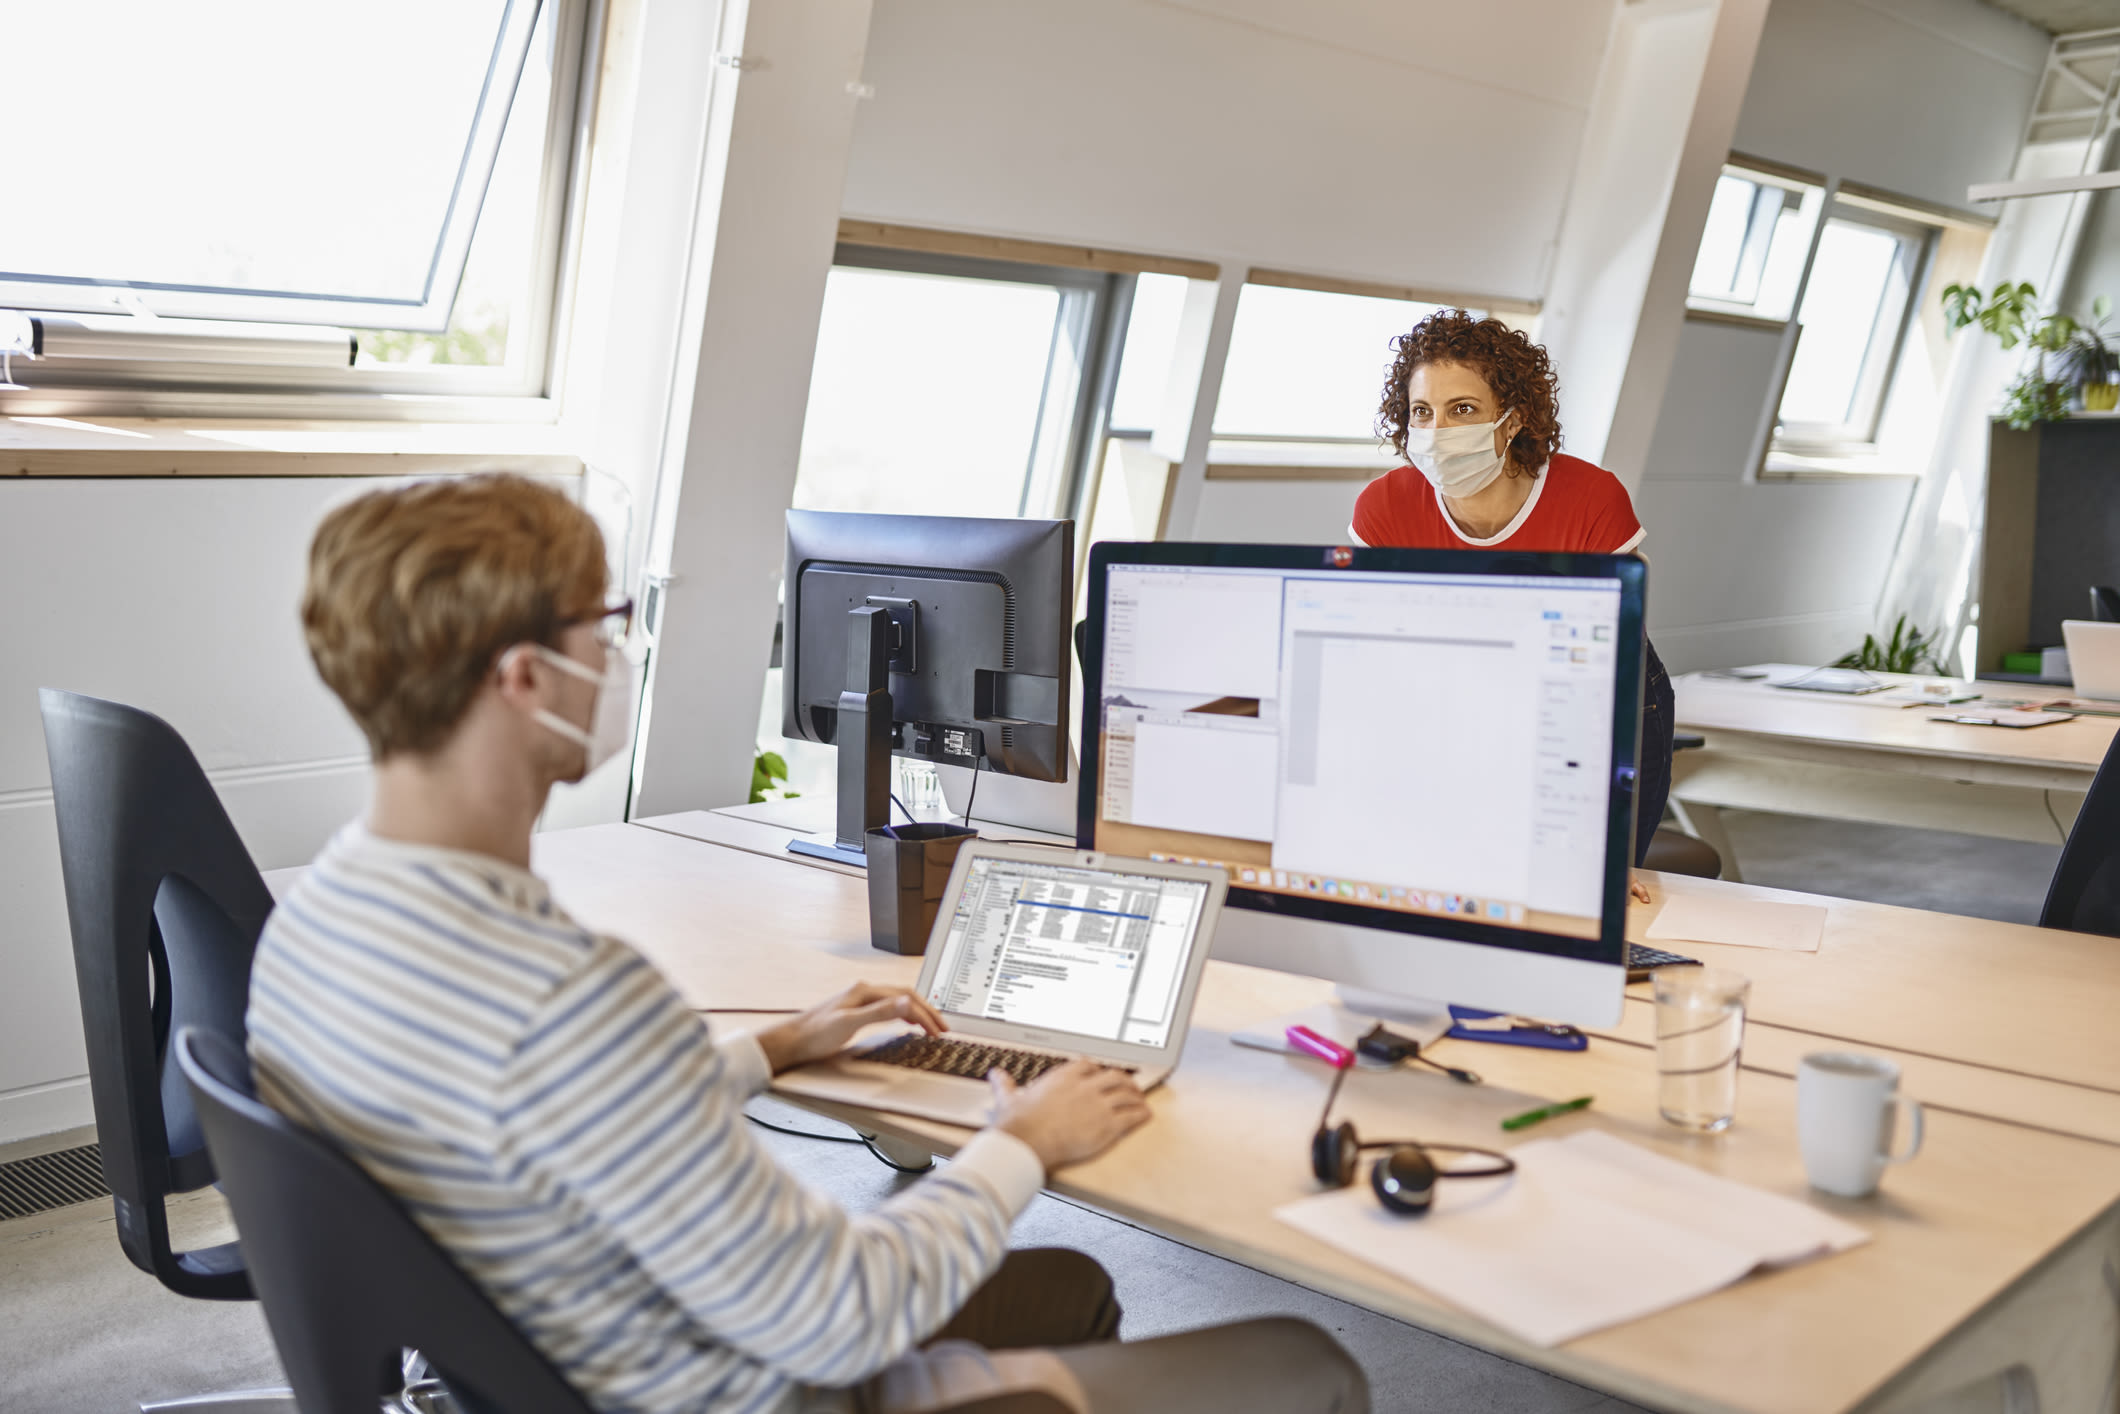 Two colleagues having a discussion across a desk, both wear face masks